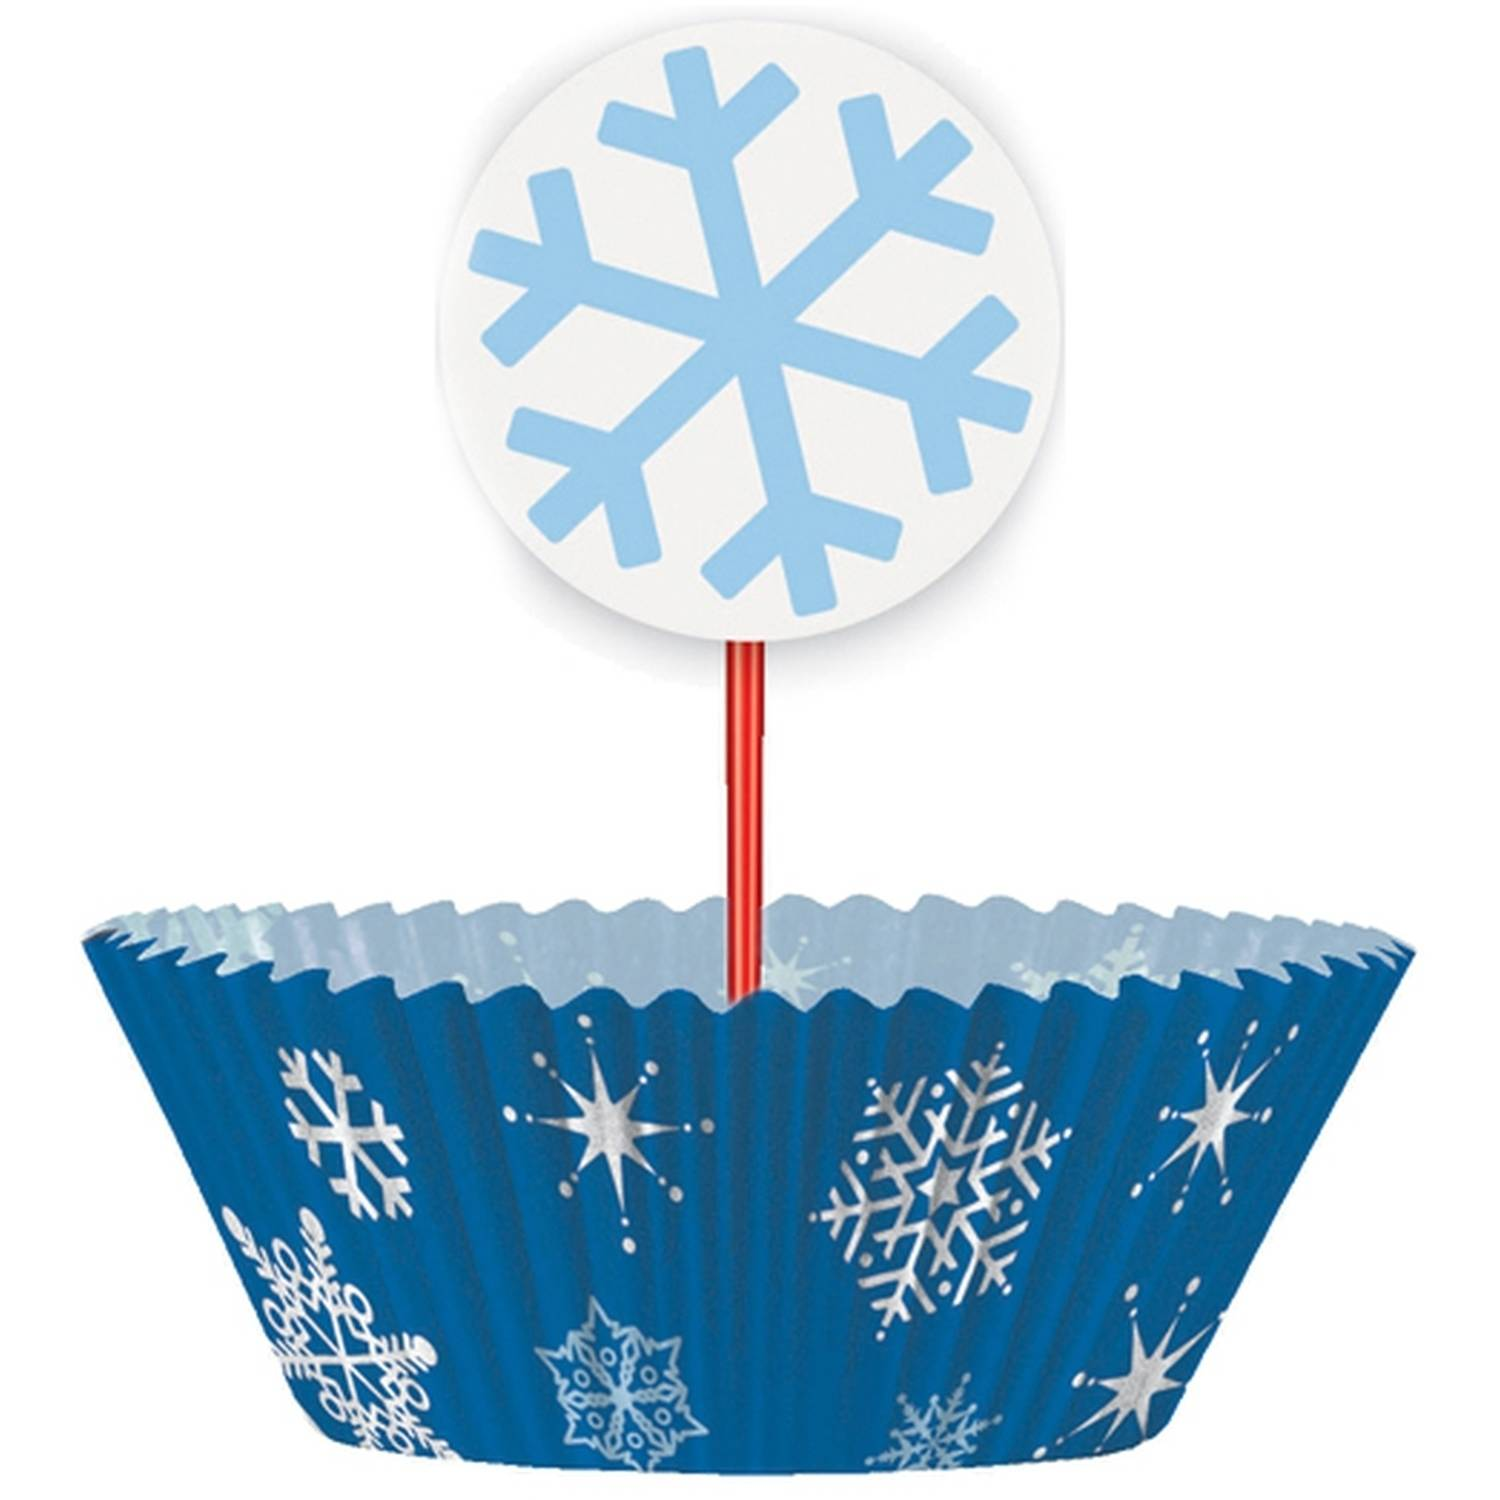 Snowflake Cupcake Kit for 24